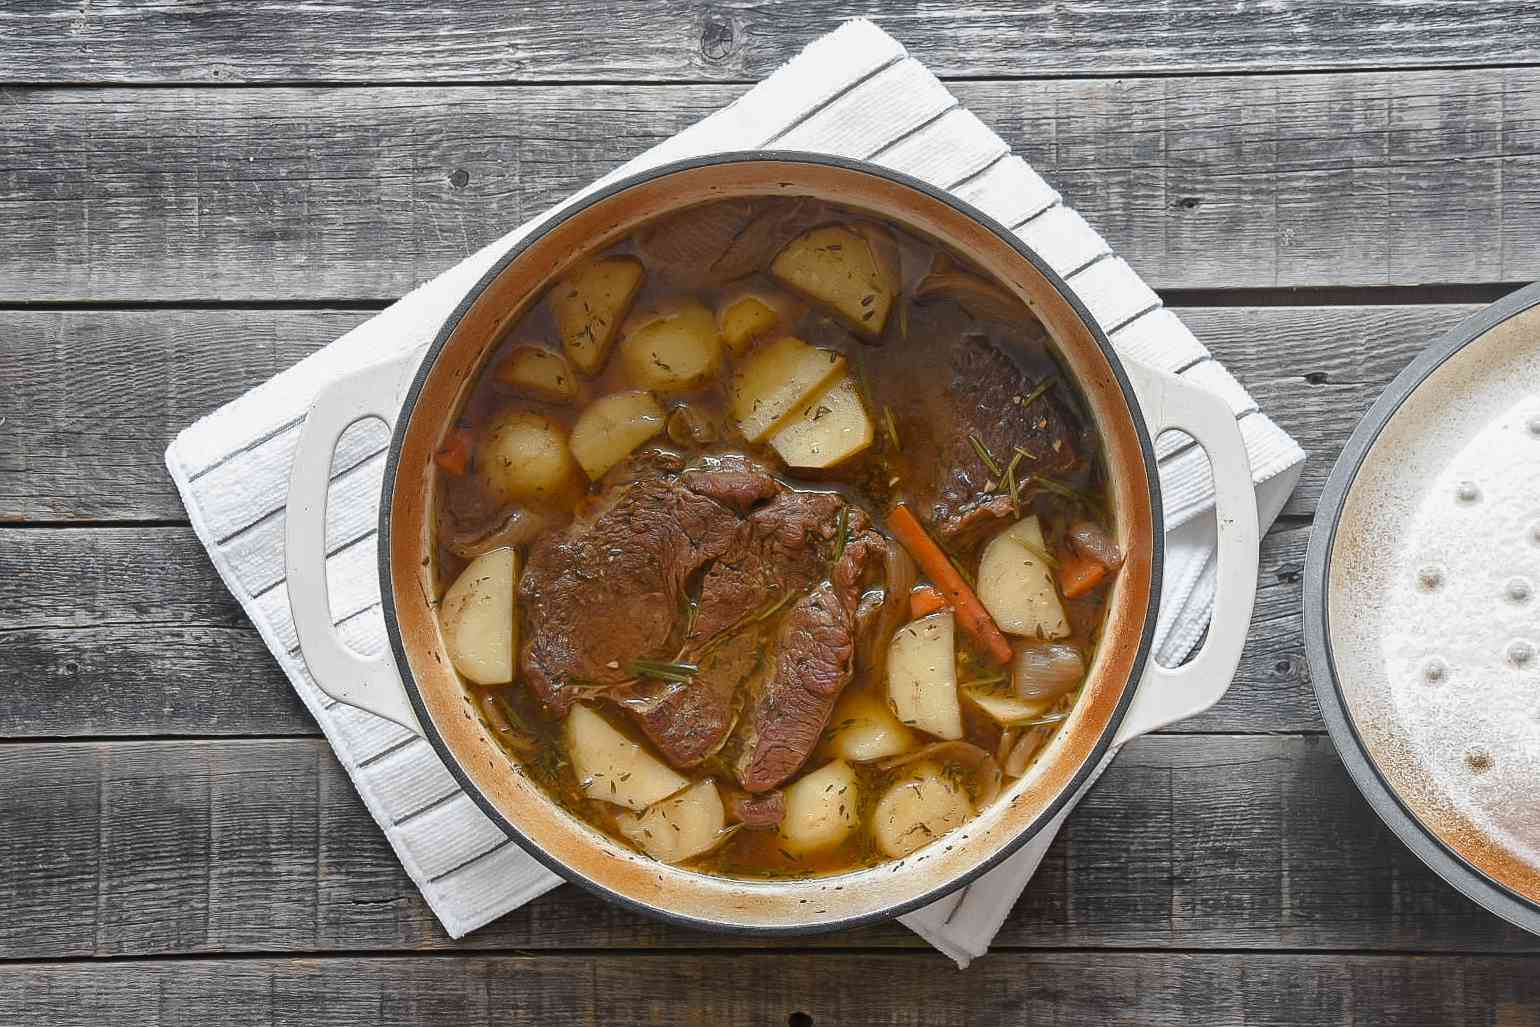 Pot roast with potatoes, carrots, onions and herbs in stock, in a large white pot